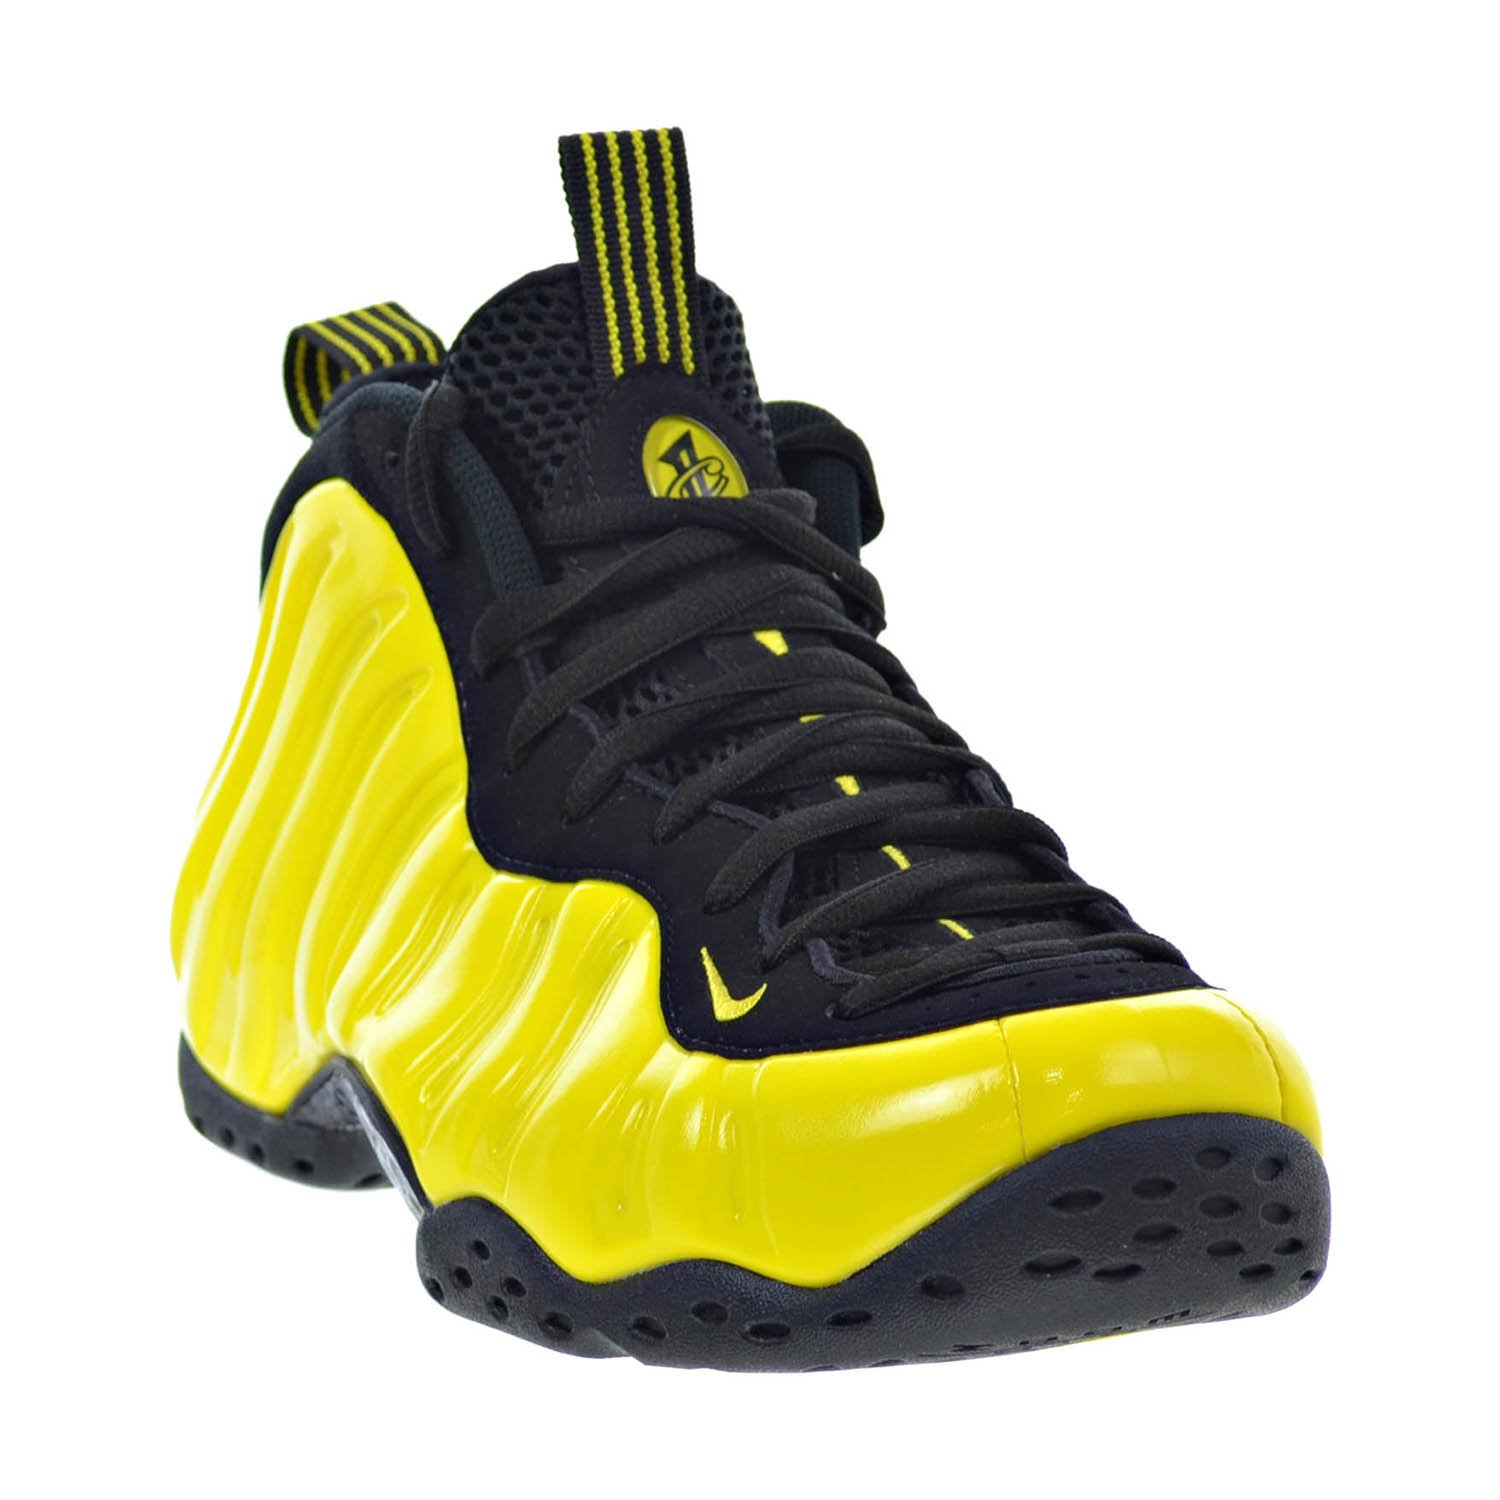 the latest 39b0d 8af4f Amazon.com   Nike Air Foamposite One Wu-Tang Men s Shoes Optic Yellow Black  314996-701   Basketball